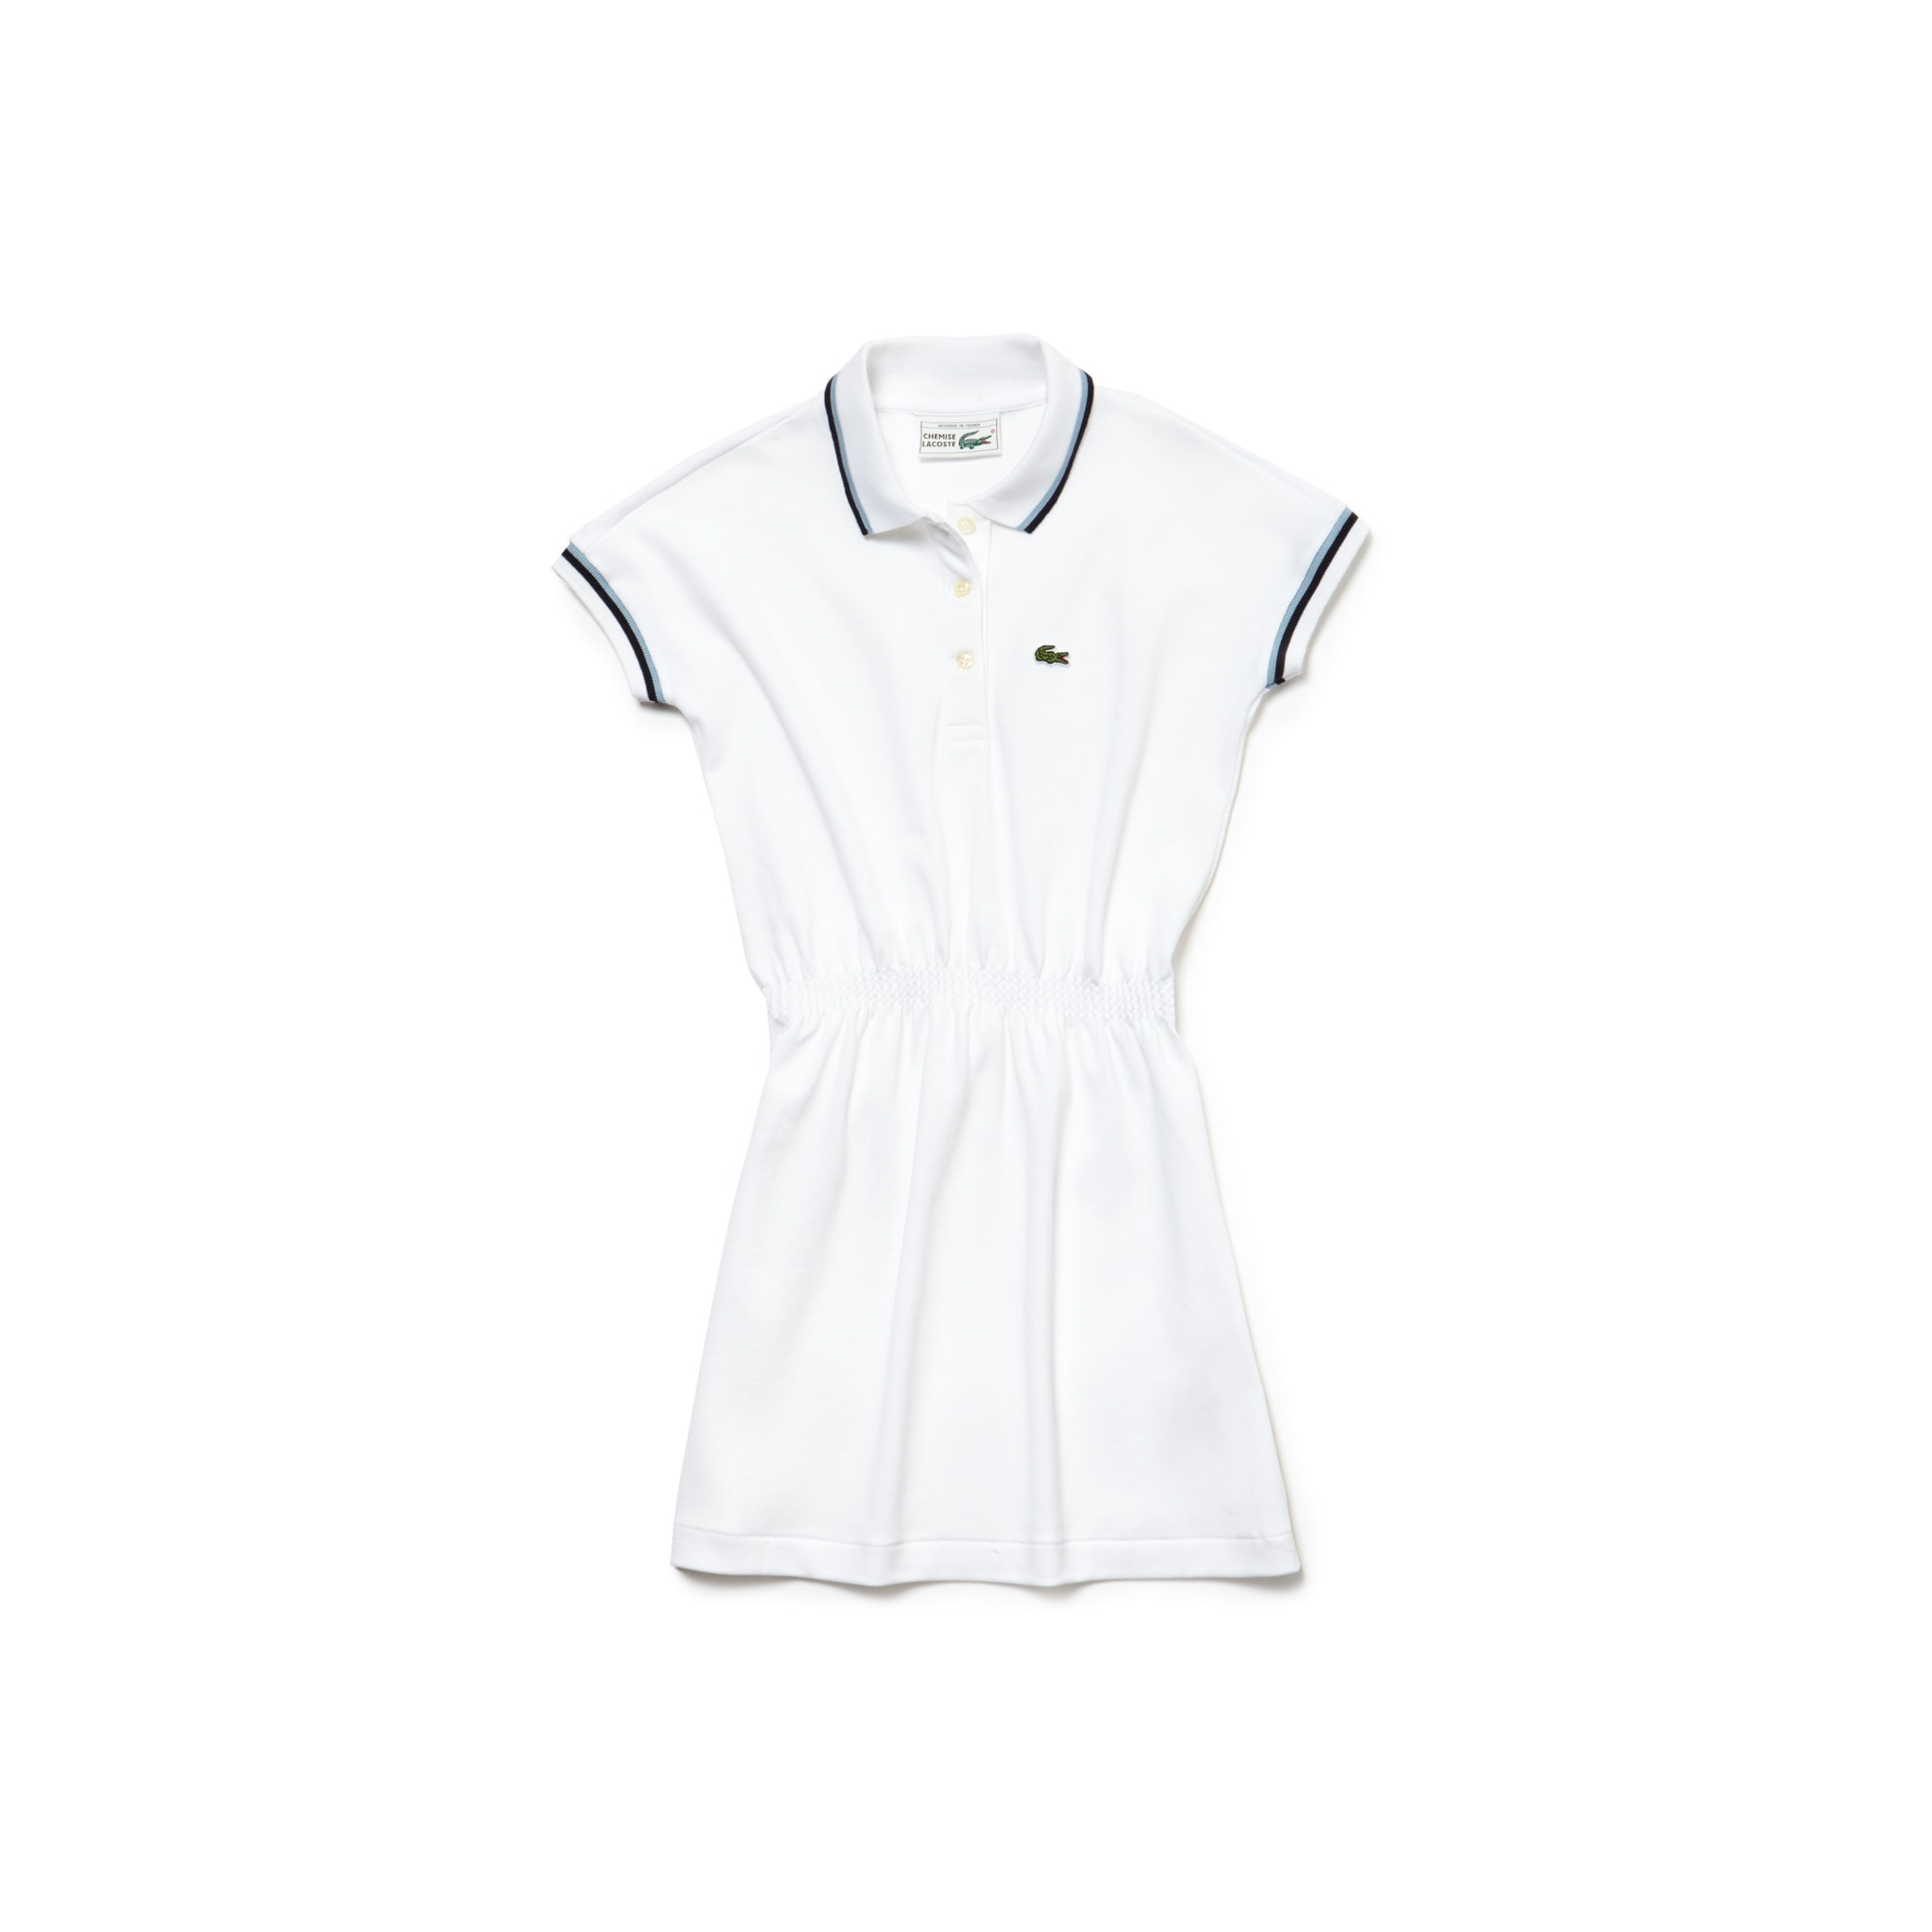 Mädchen LACOSTE 85th Anniversary Limited Edition Piqué-Polokleid